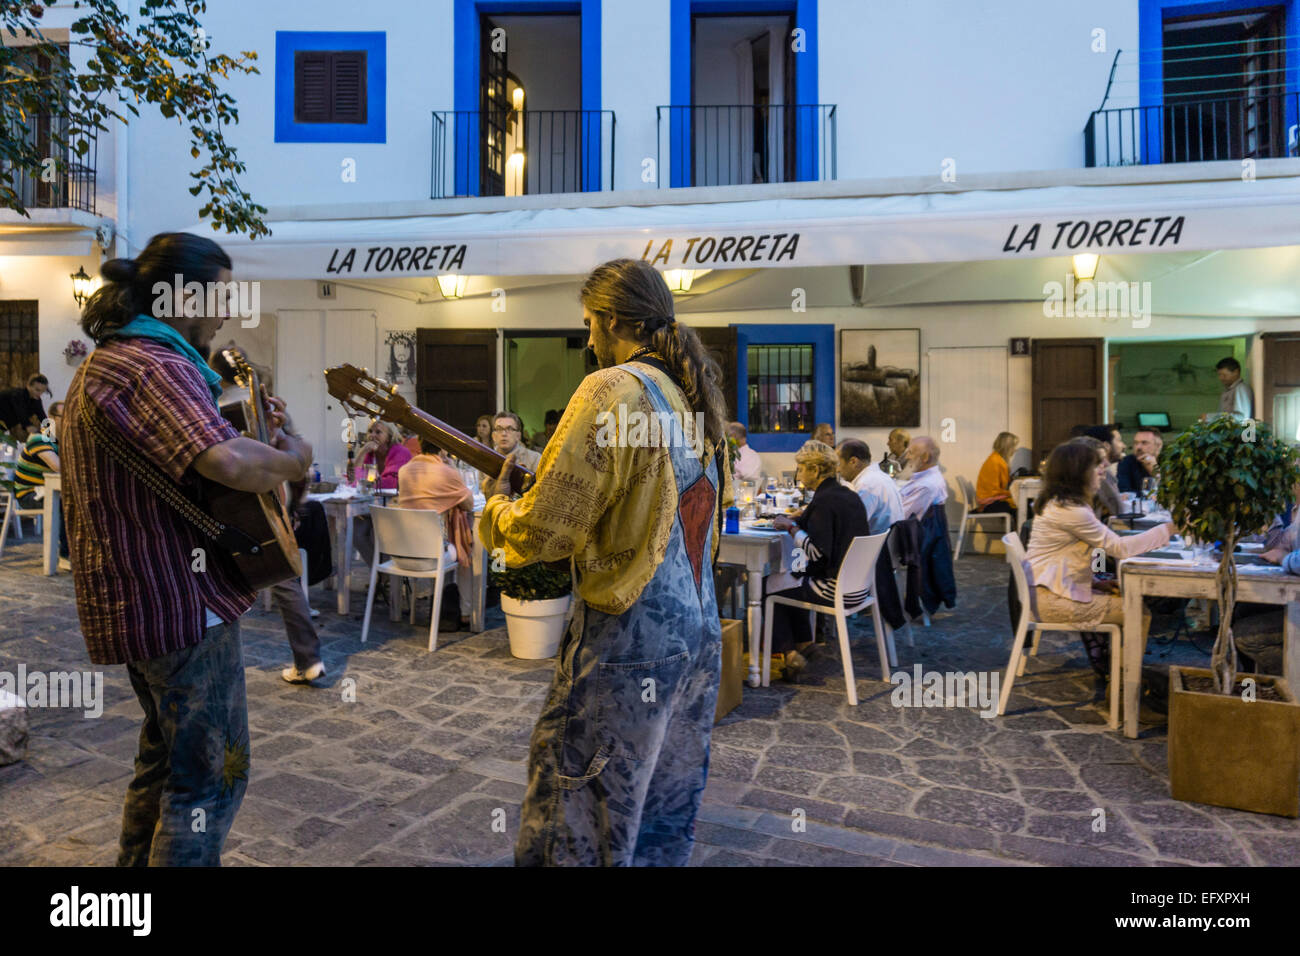 Street Musicians at Dalt Vila, Old City Center of Ibiza town, Spain - Stock Image